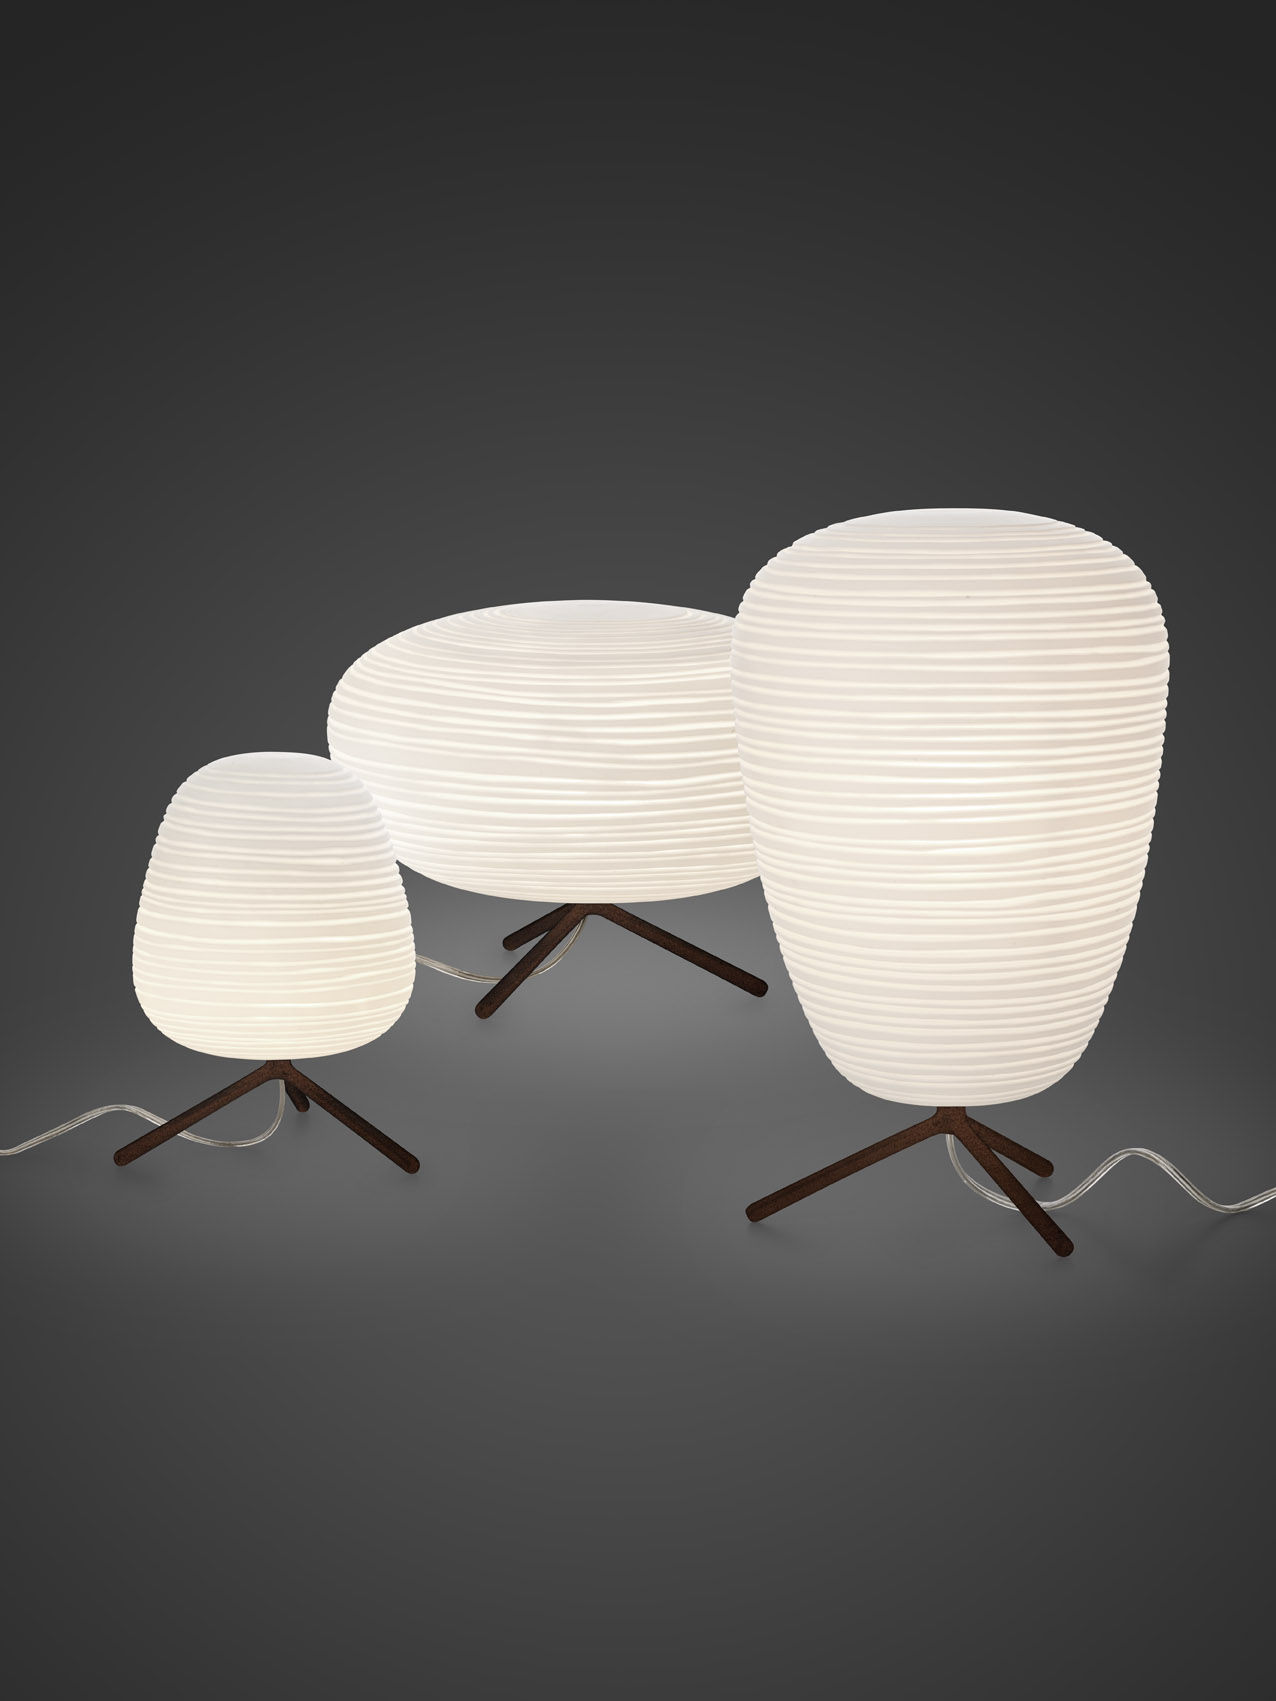 Rituals 1 Table Lamp White On Off Switch By Foscarini Regular Light Takes Care Of Quotoffquot And Quotonquot A Dimmer Lighting Lamps